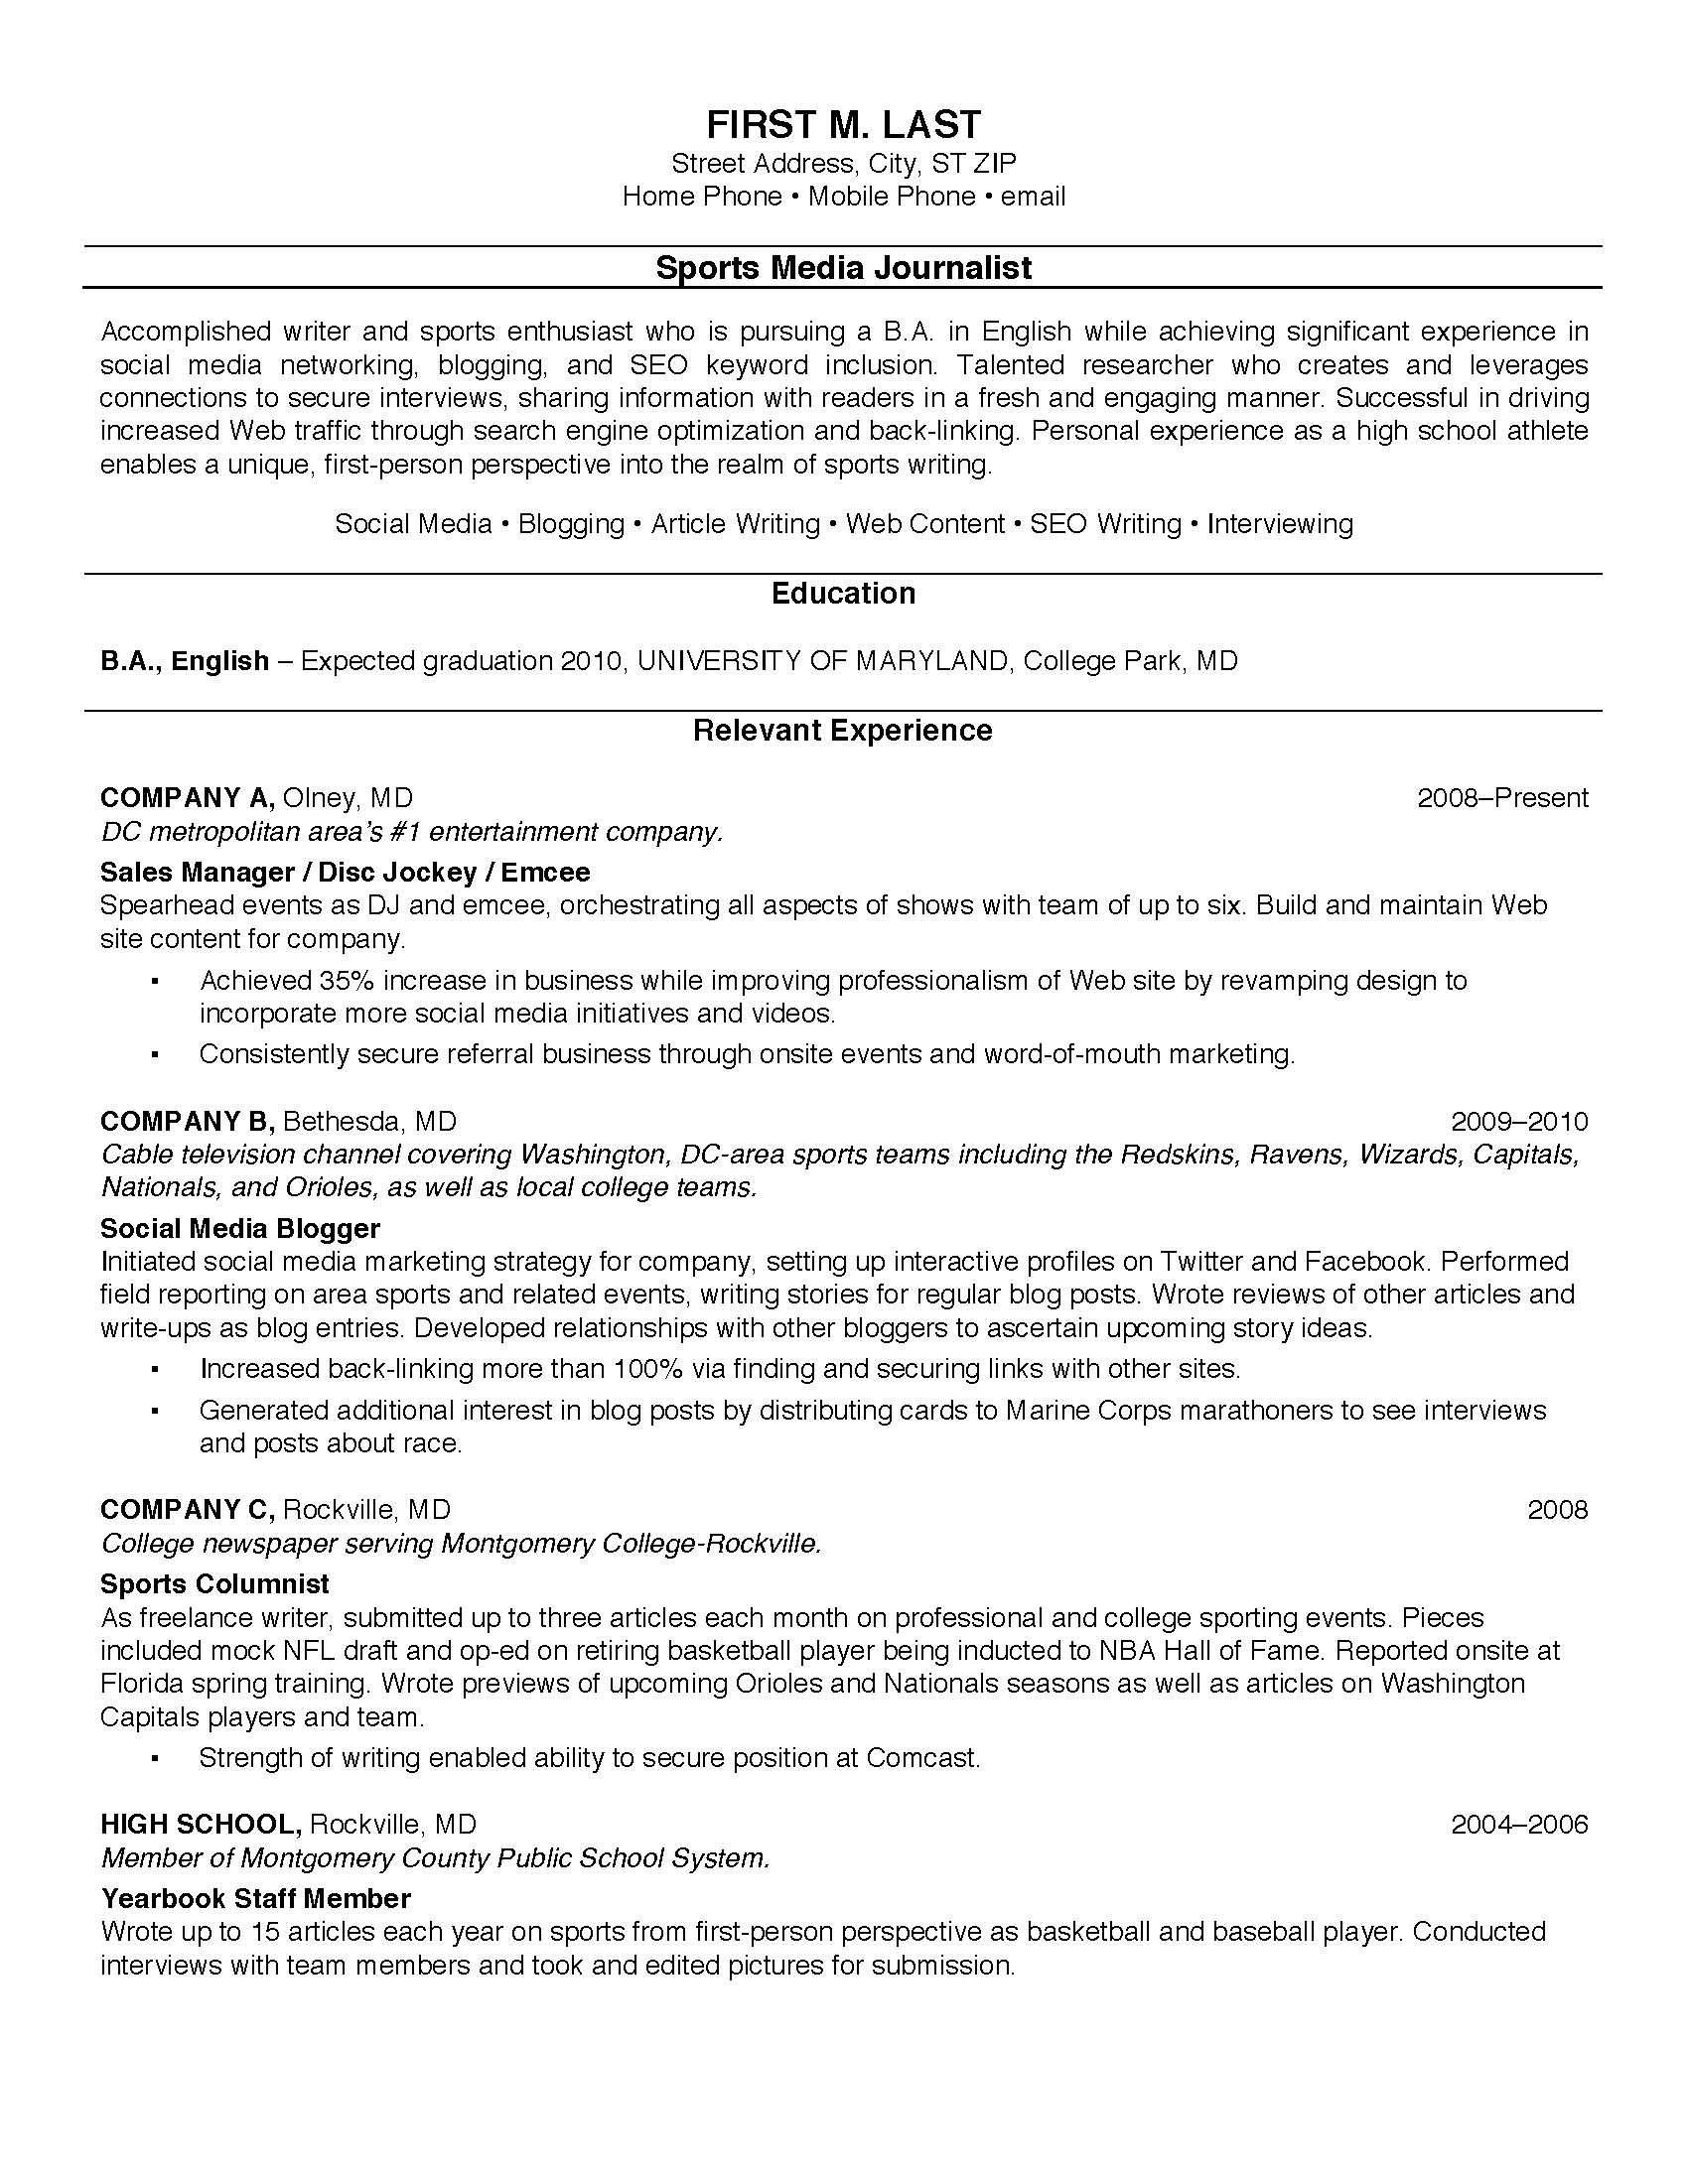 Resume Format College Student